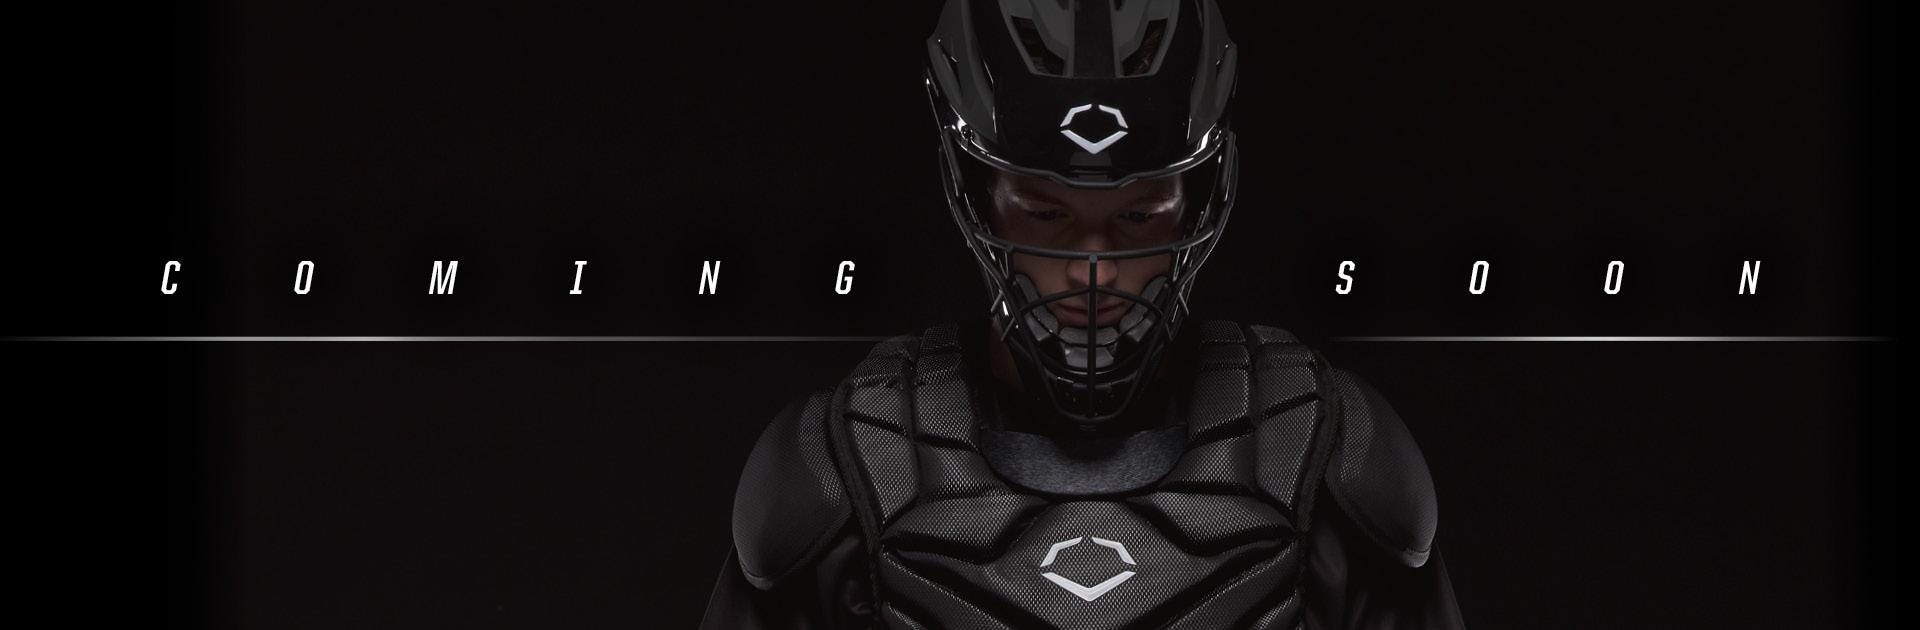 Coming Soon - Evoshield Catcher's Gear